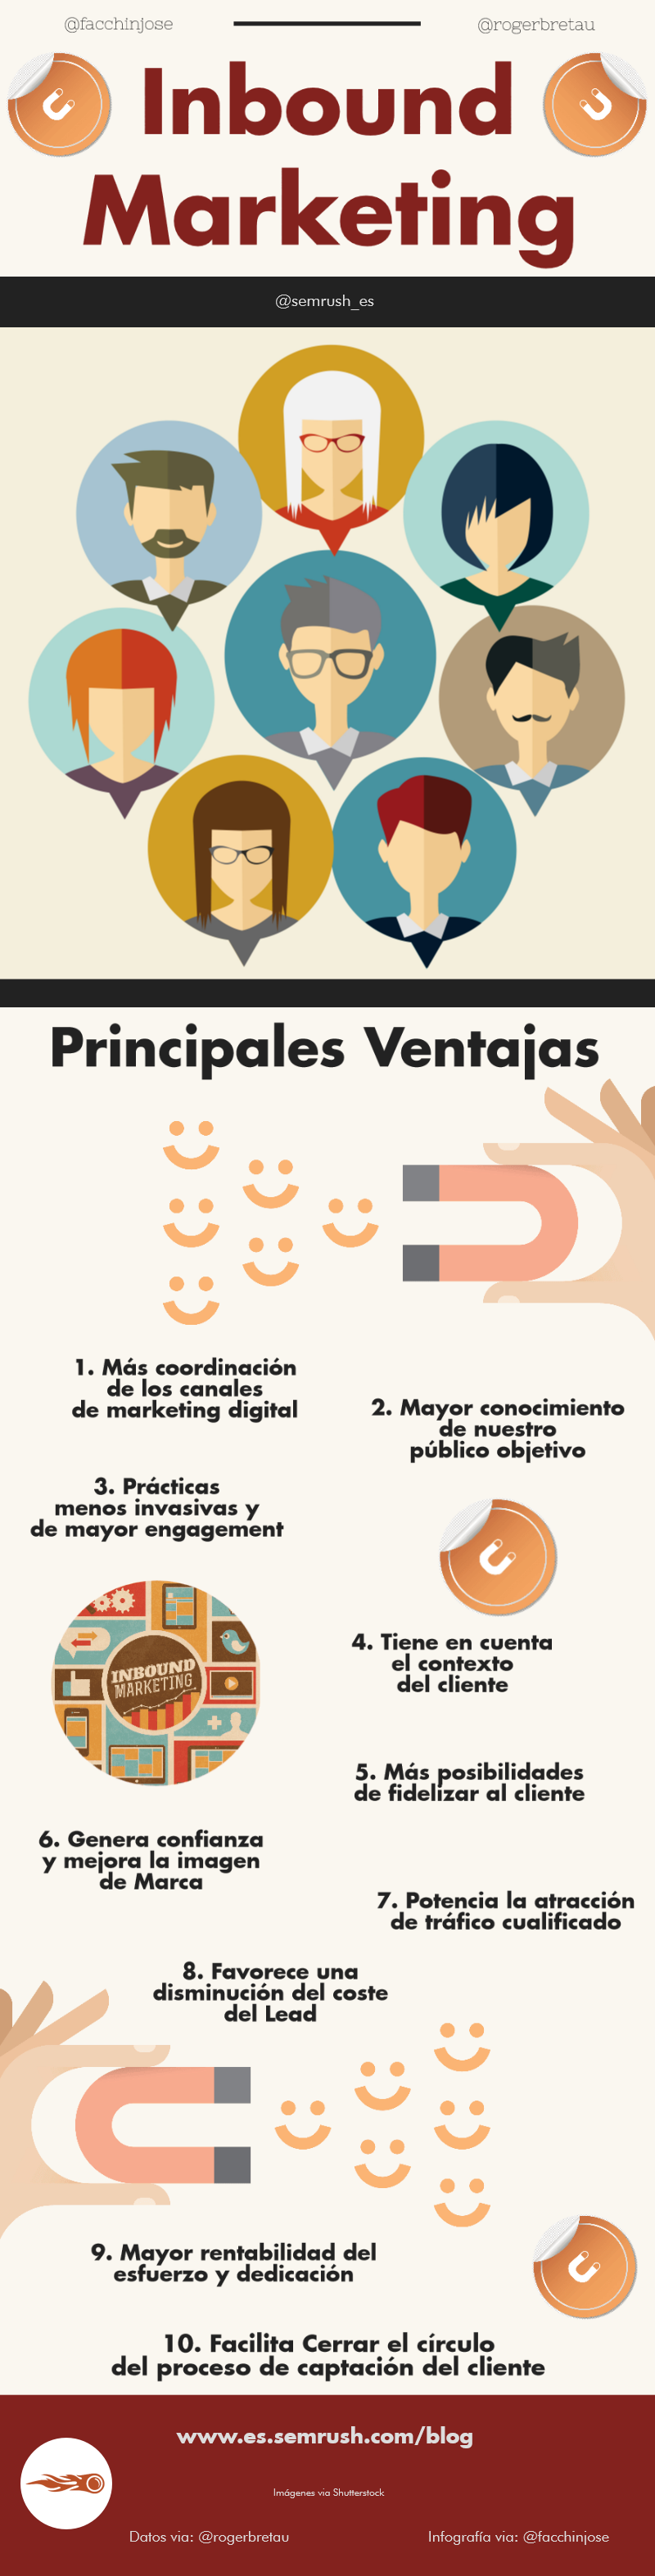 Inbound Marketing - Infografía